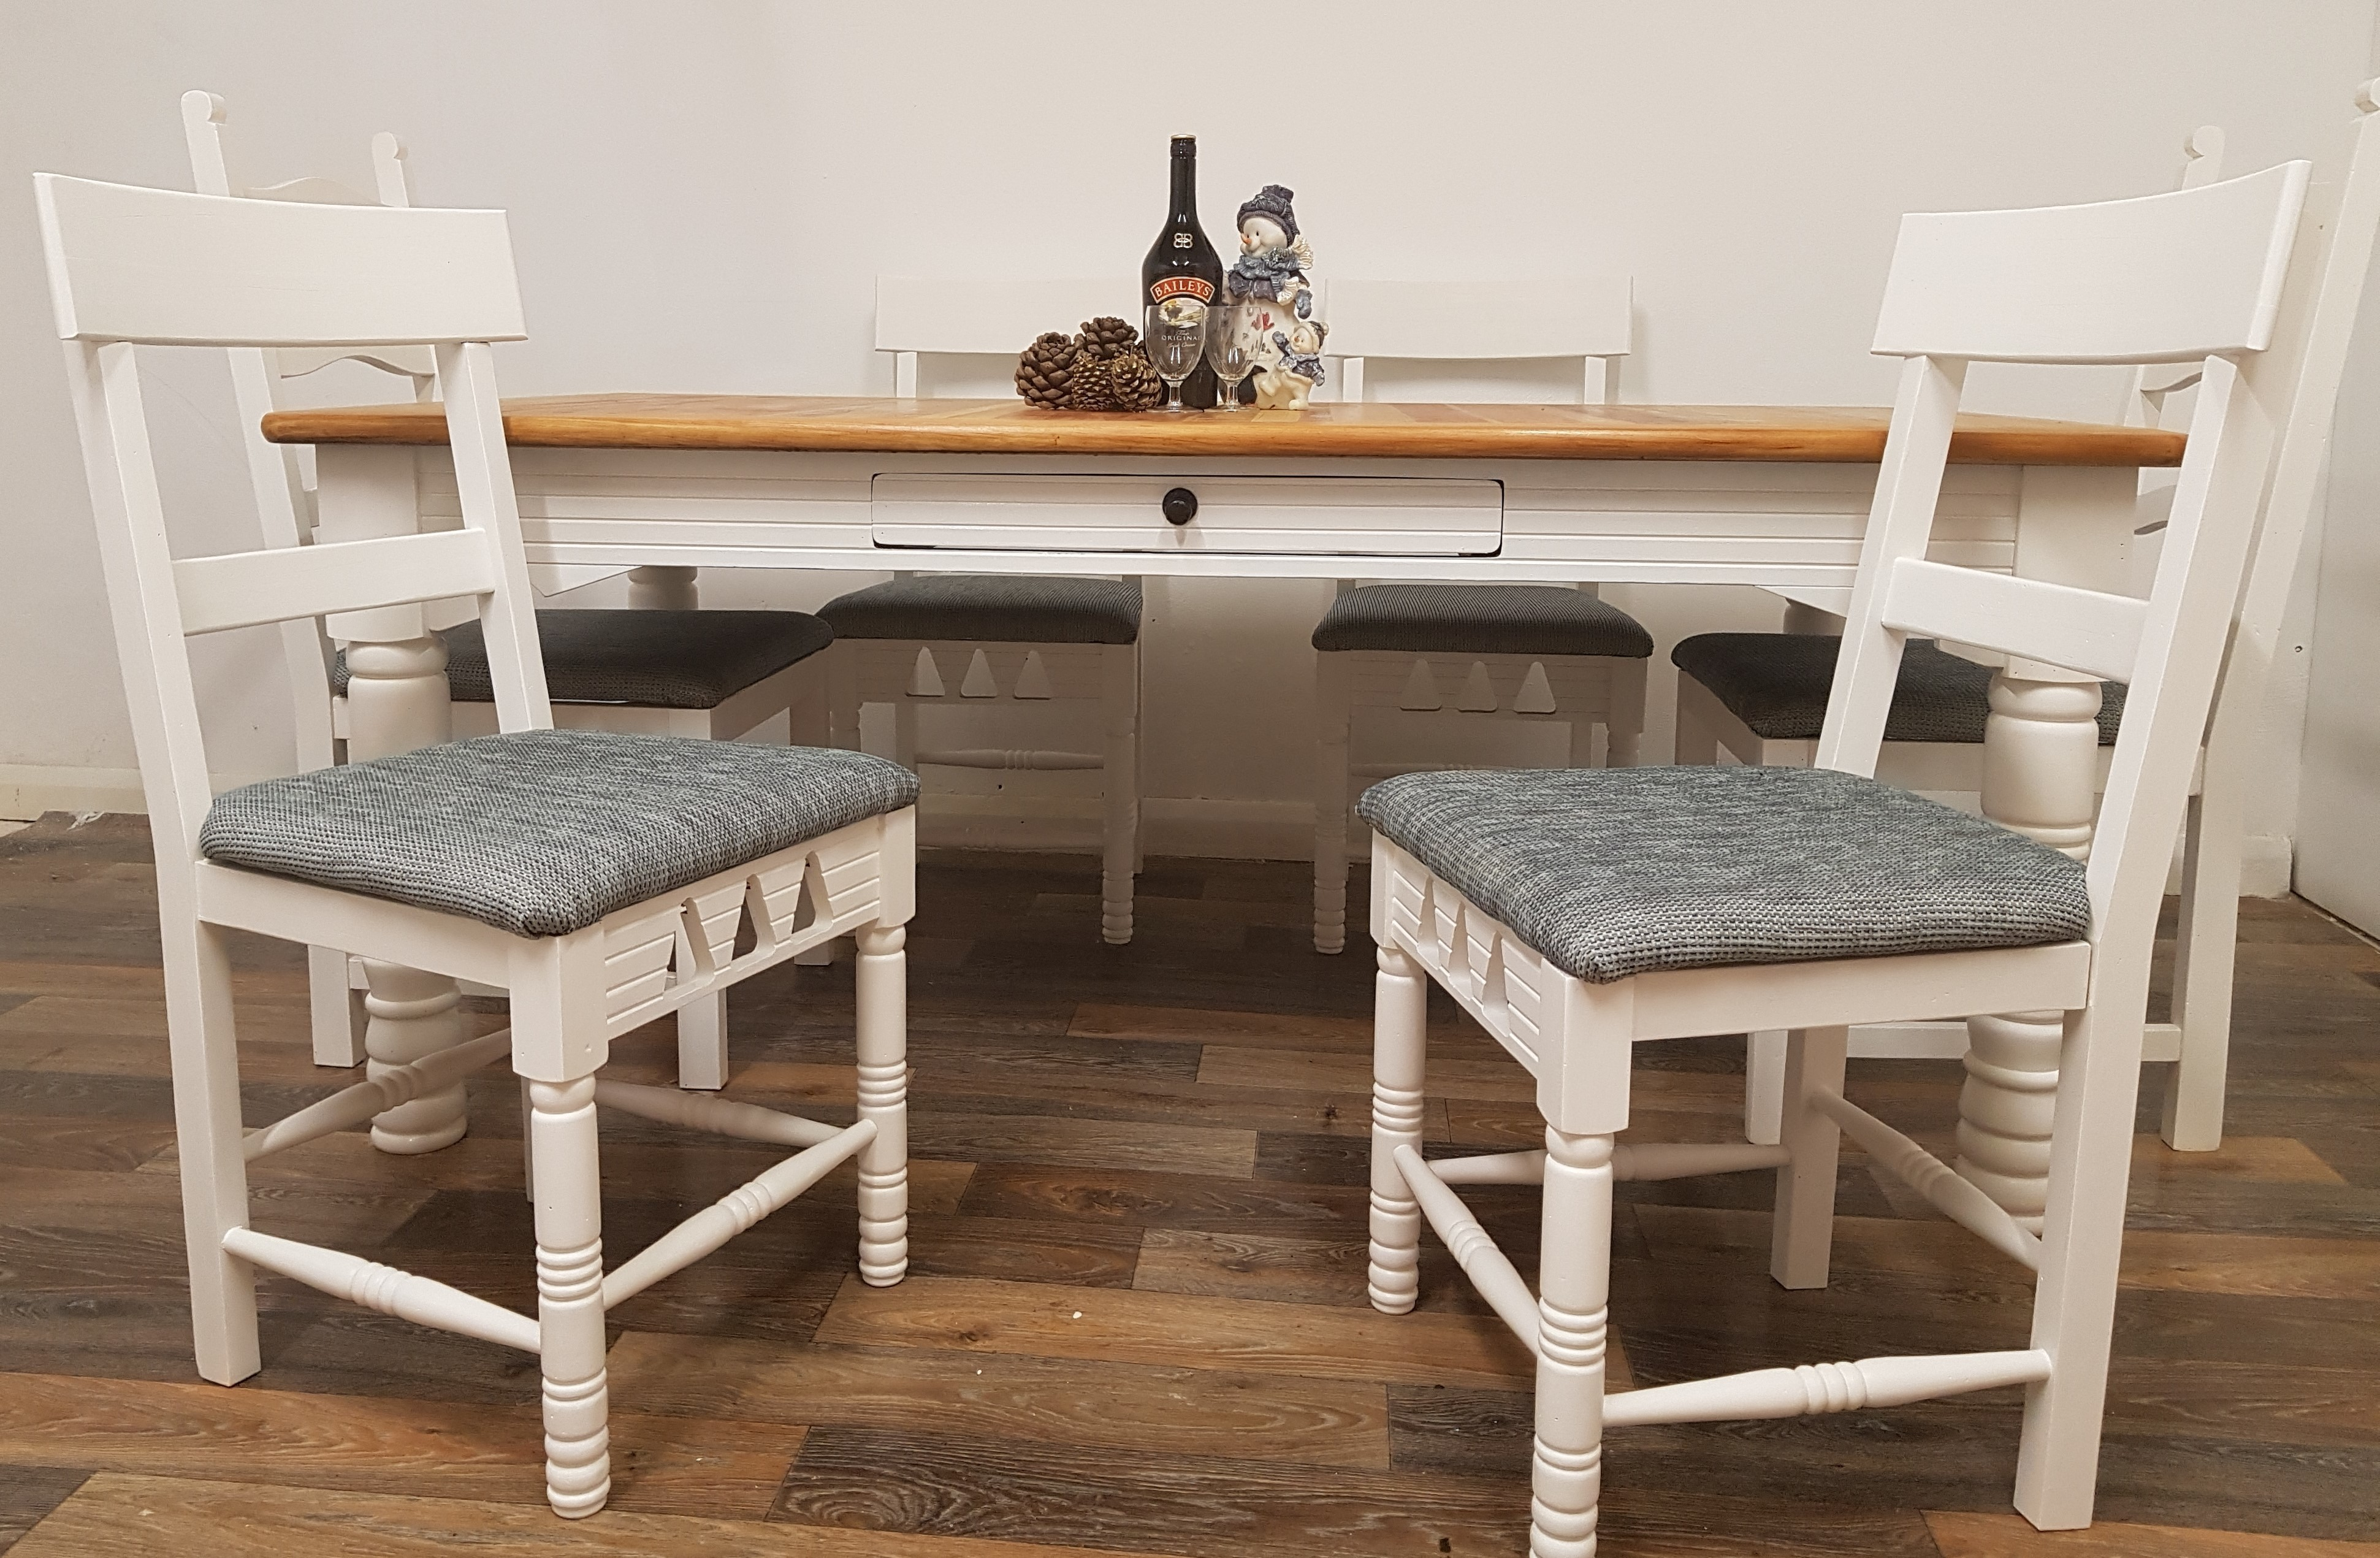 Refurbished 6 Seater Mexican Pine Farmhouse Dining Table With Re Upholstered Seats Rustic And Six Chairs Useful Drawer